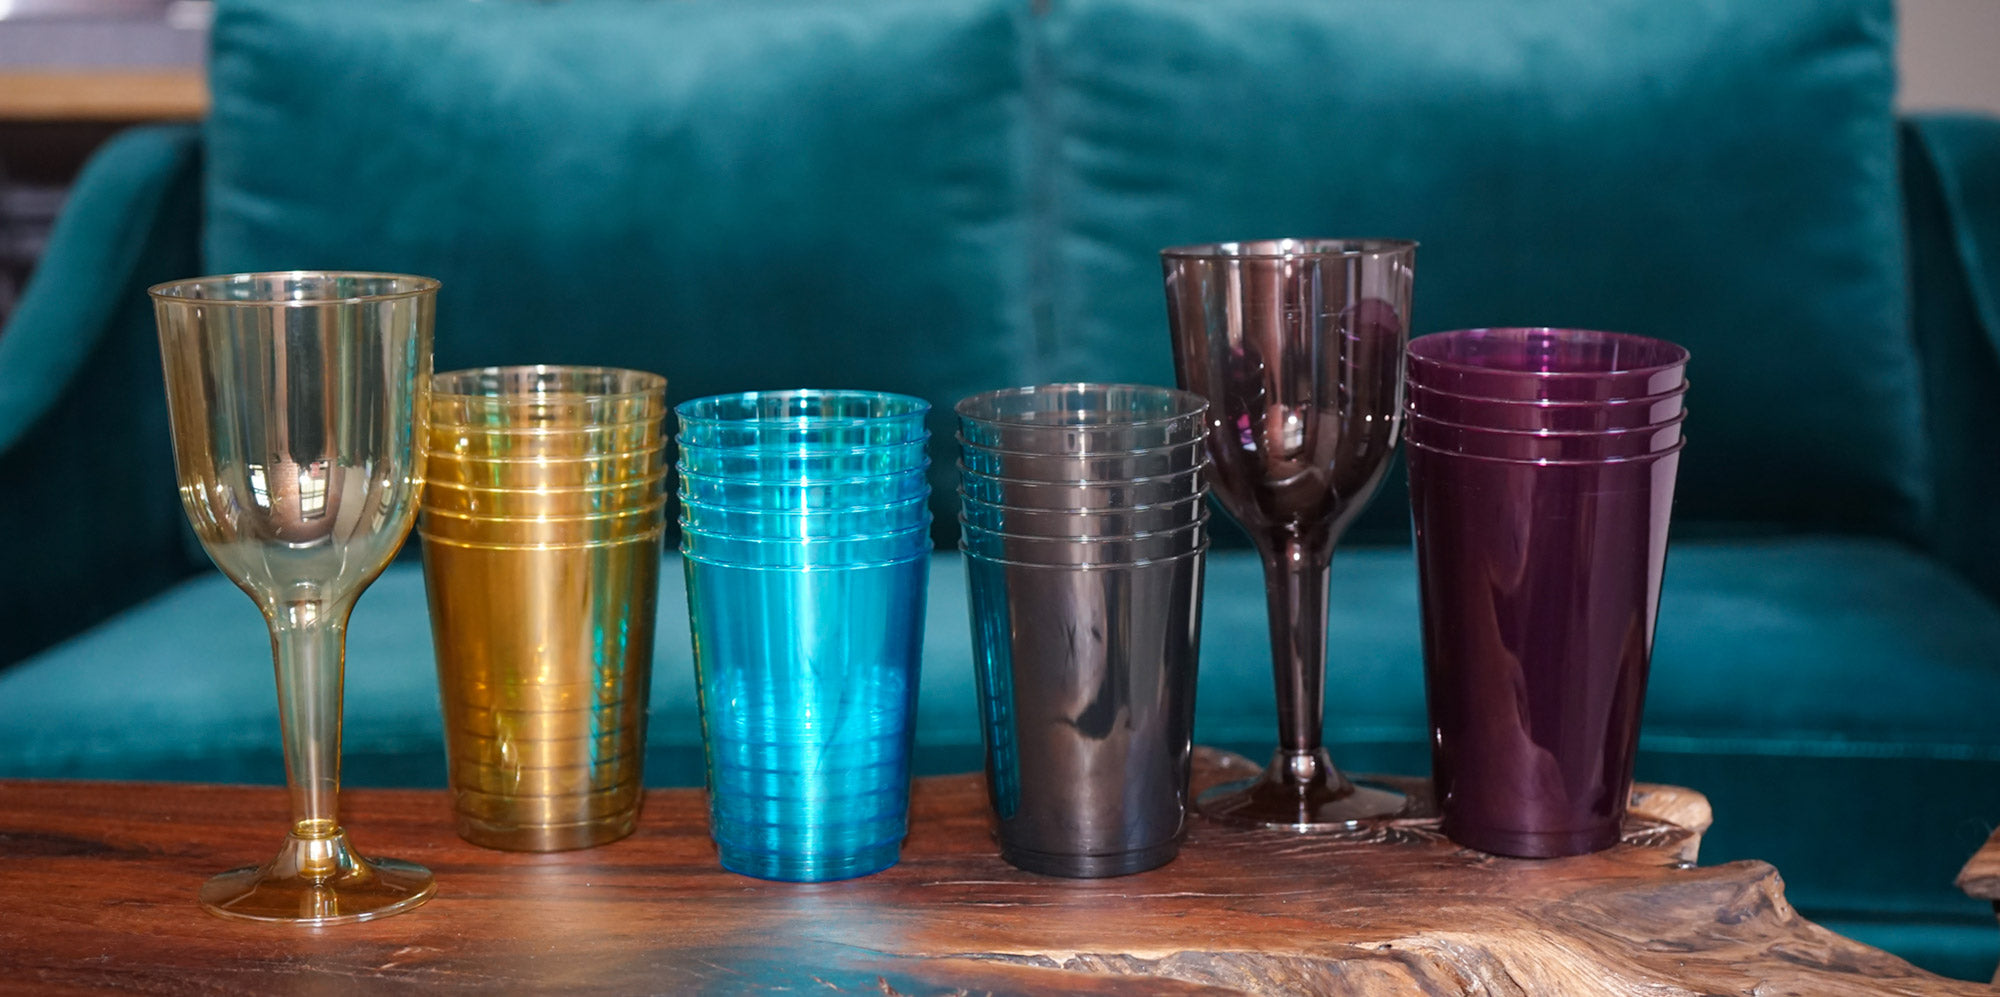 lentramise-jewel-tone-disposable-tableware